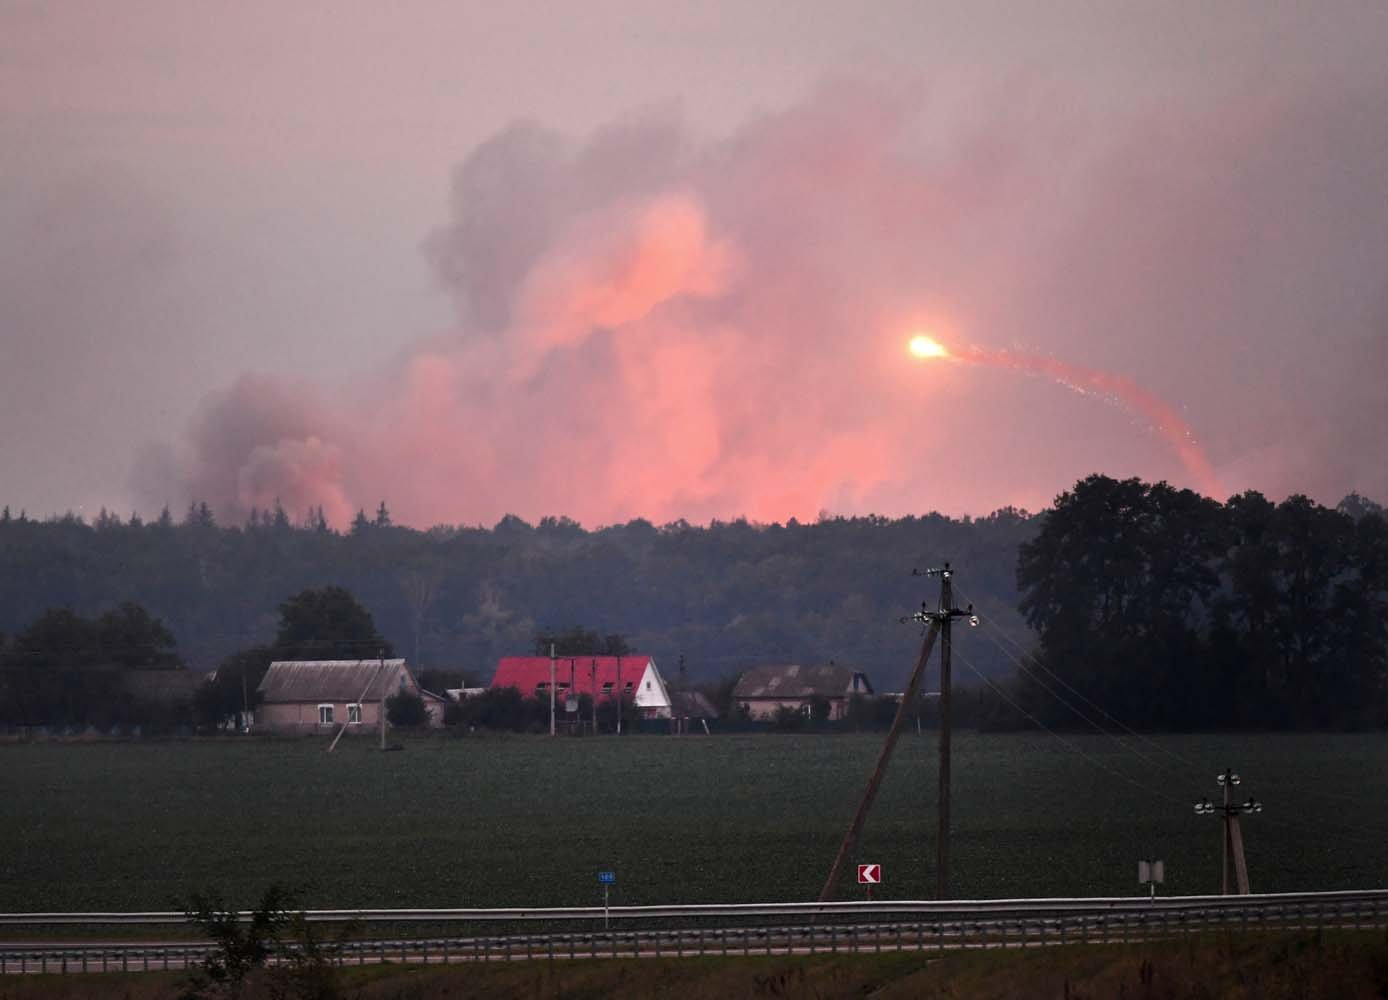 "This photo taken on September 27, 2017 near Kalynivka shows explosions at a military munitions depot. Ukranian authorities evacuated nearly 30,000 people September 27 from the central Vinnytsya region after a huge munitions depot caught fire and set off artillery shells and blasts prosecutors were treating as an act of ""sabotage"". It was the second major incident affecting a Ukrainian weapons storage site this year. Kiev blamed the first one in March on Moscow and its Russian-backed insurgents fighting Ukrainian forces in the war-wrecked east -- a charge both sides denied. / AFP PHOTO / Sergei SUPINSKY"